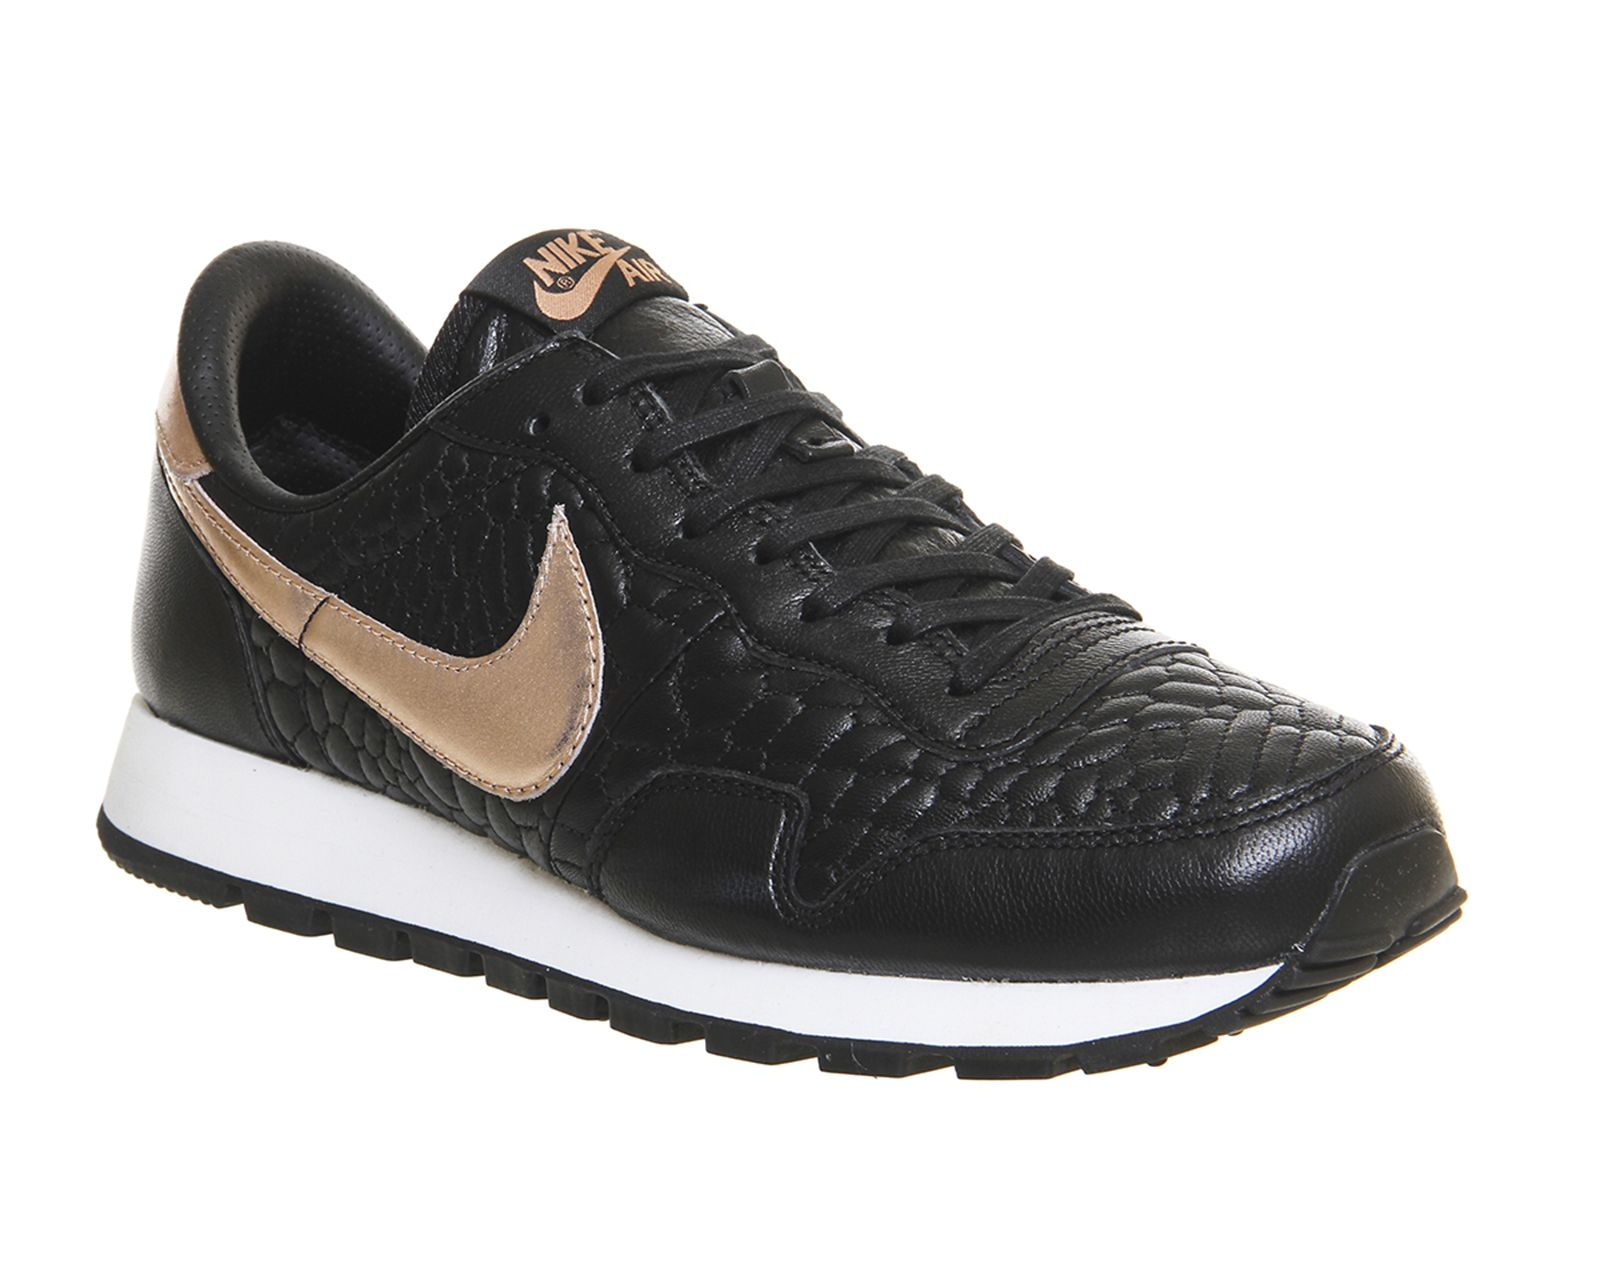 Buy Black Metallic Rose Gold Prem Quilted Nike Air Pegasus 83 from  OFFICE.co.